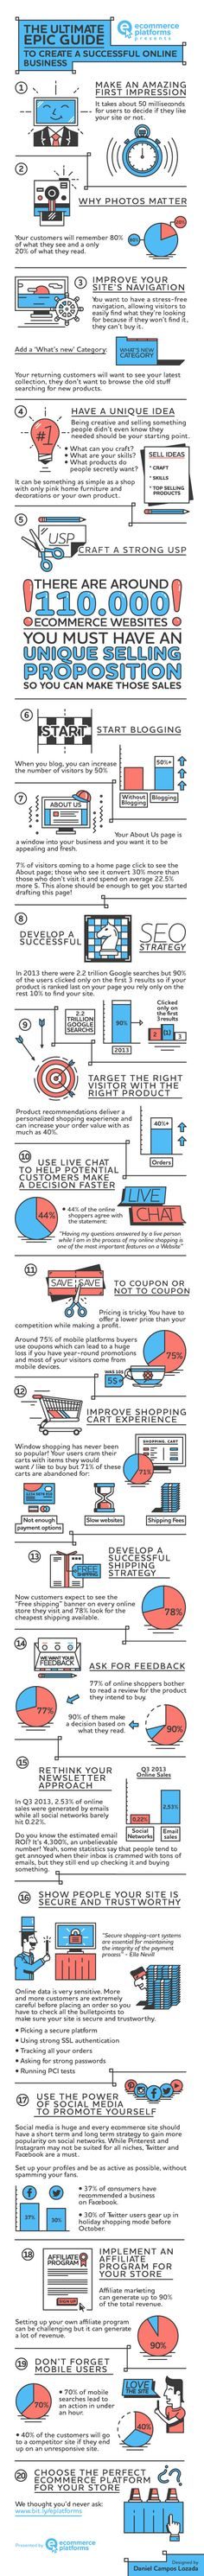 Marketing strategies infographic & data visualisation Infographic: The ultimate guide to creating a successful online business photo Marketing Digital, P's Of Marketing, Inbound Marketing, Business Marketing, Internet Marketing, Online Marketing, Social Media Marketing, Content Marketing, Marketing Technology